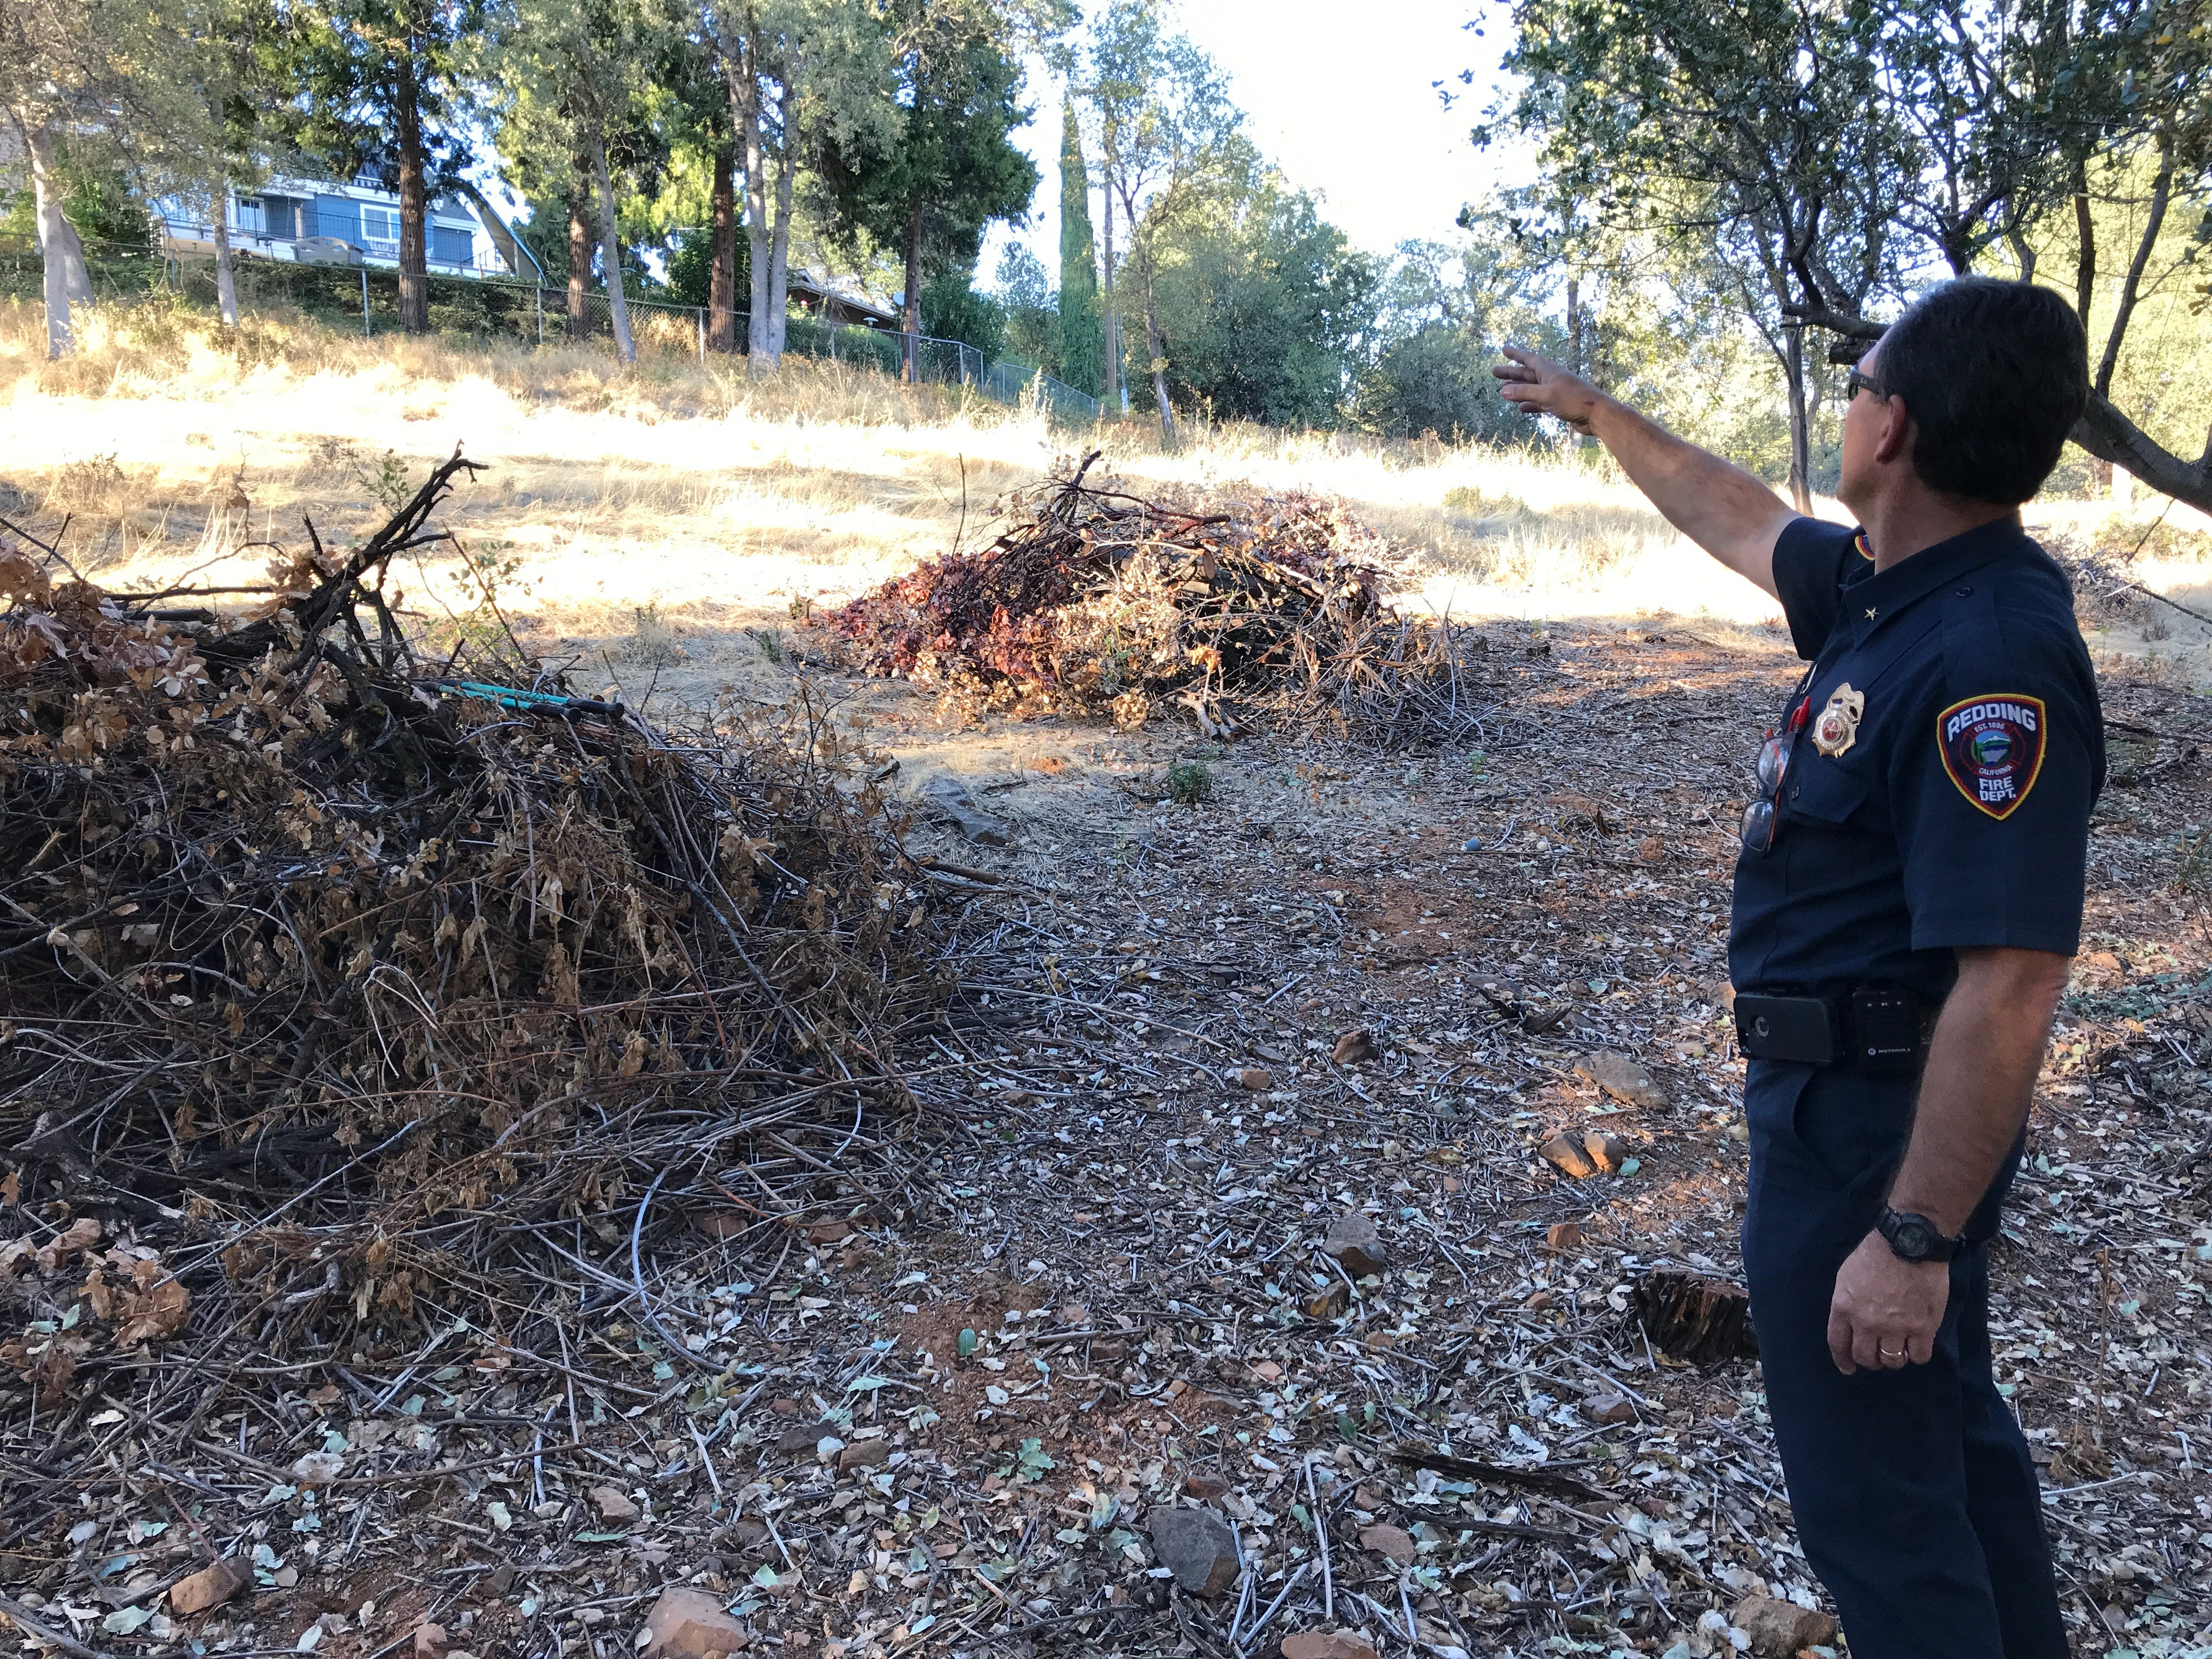 Redding Fire Marshal Craig Wittner points to a home off Royal Oaks Drive in the Sunset Terrace subdivision where an inmate fire crew collected and piled brush to reduce fire hazards in the 28-acre open space up to Arbor Place. The piles were going to be removed before another fuels-reduction project would take place on the north end of nearby Scenic Drive.